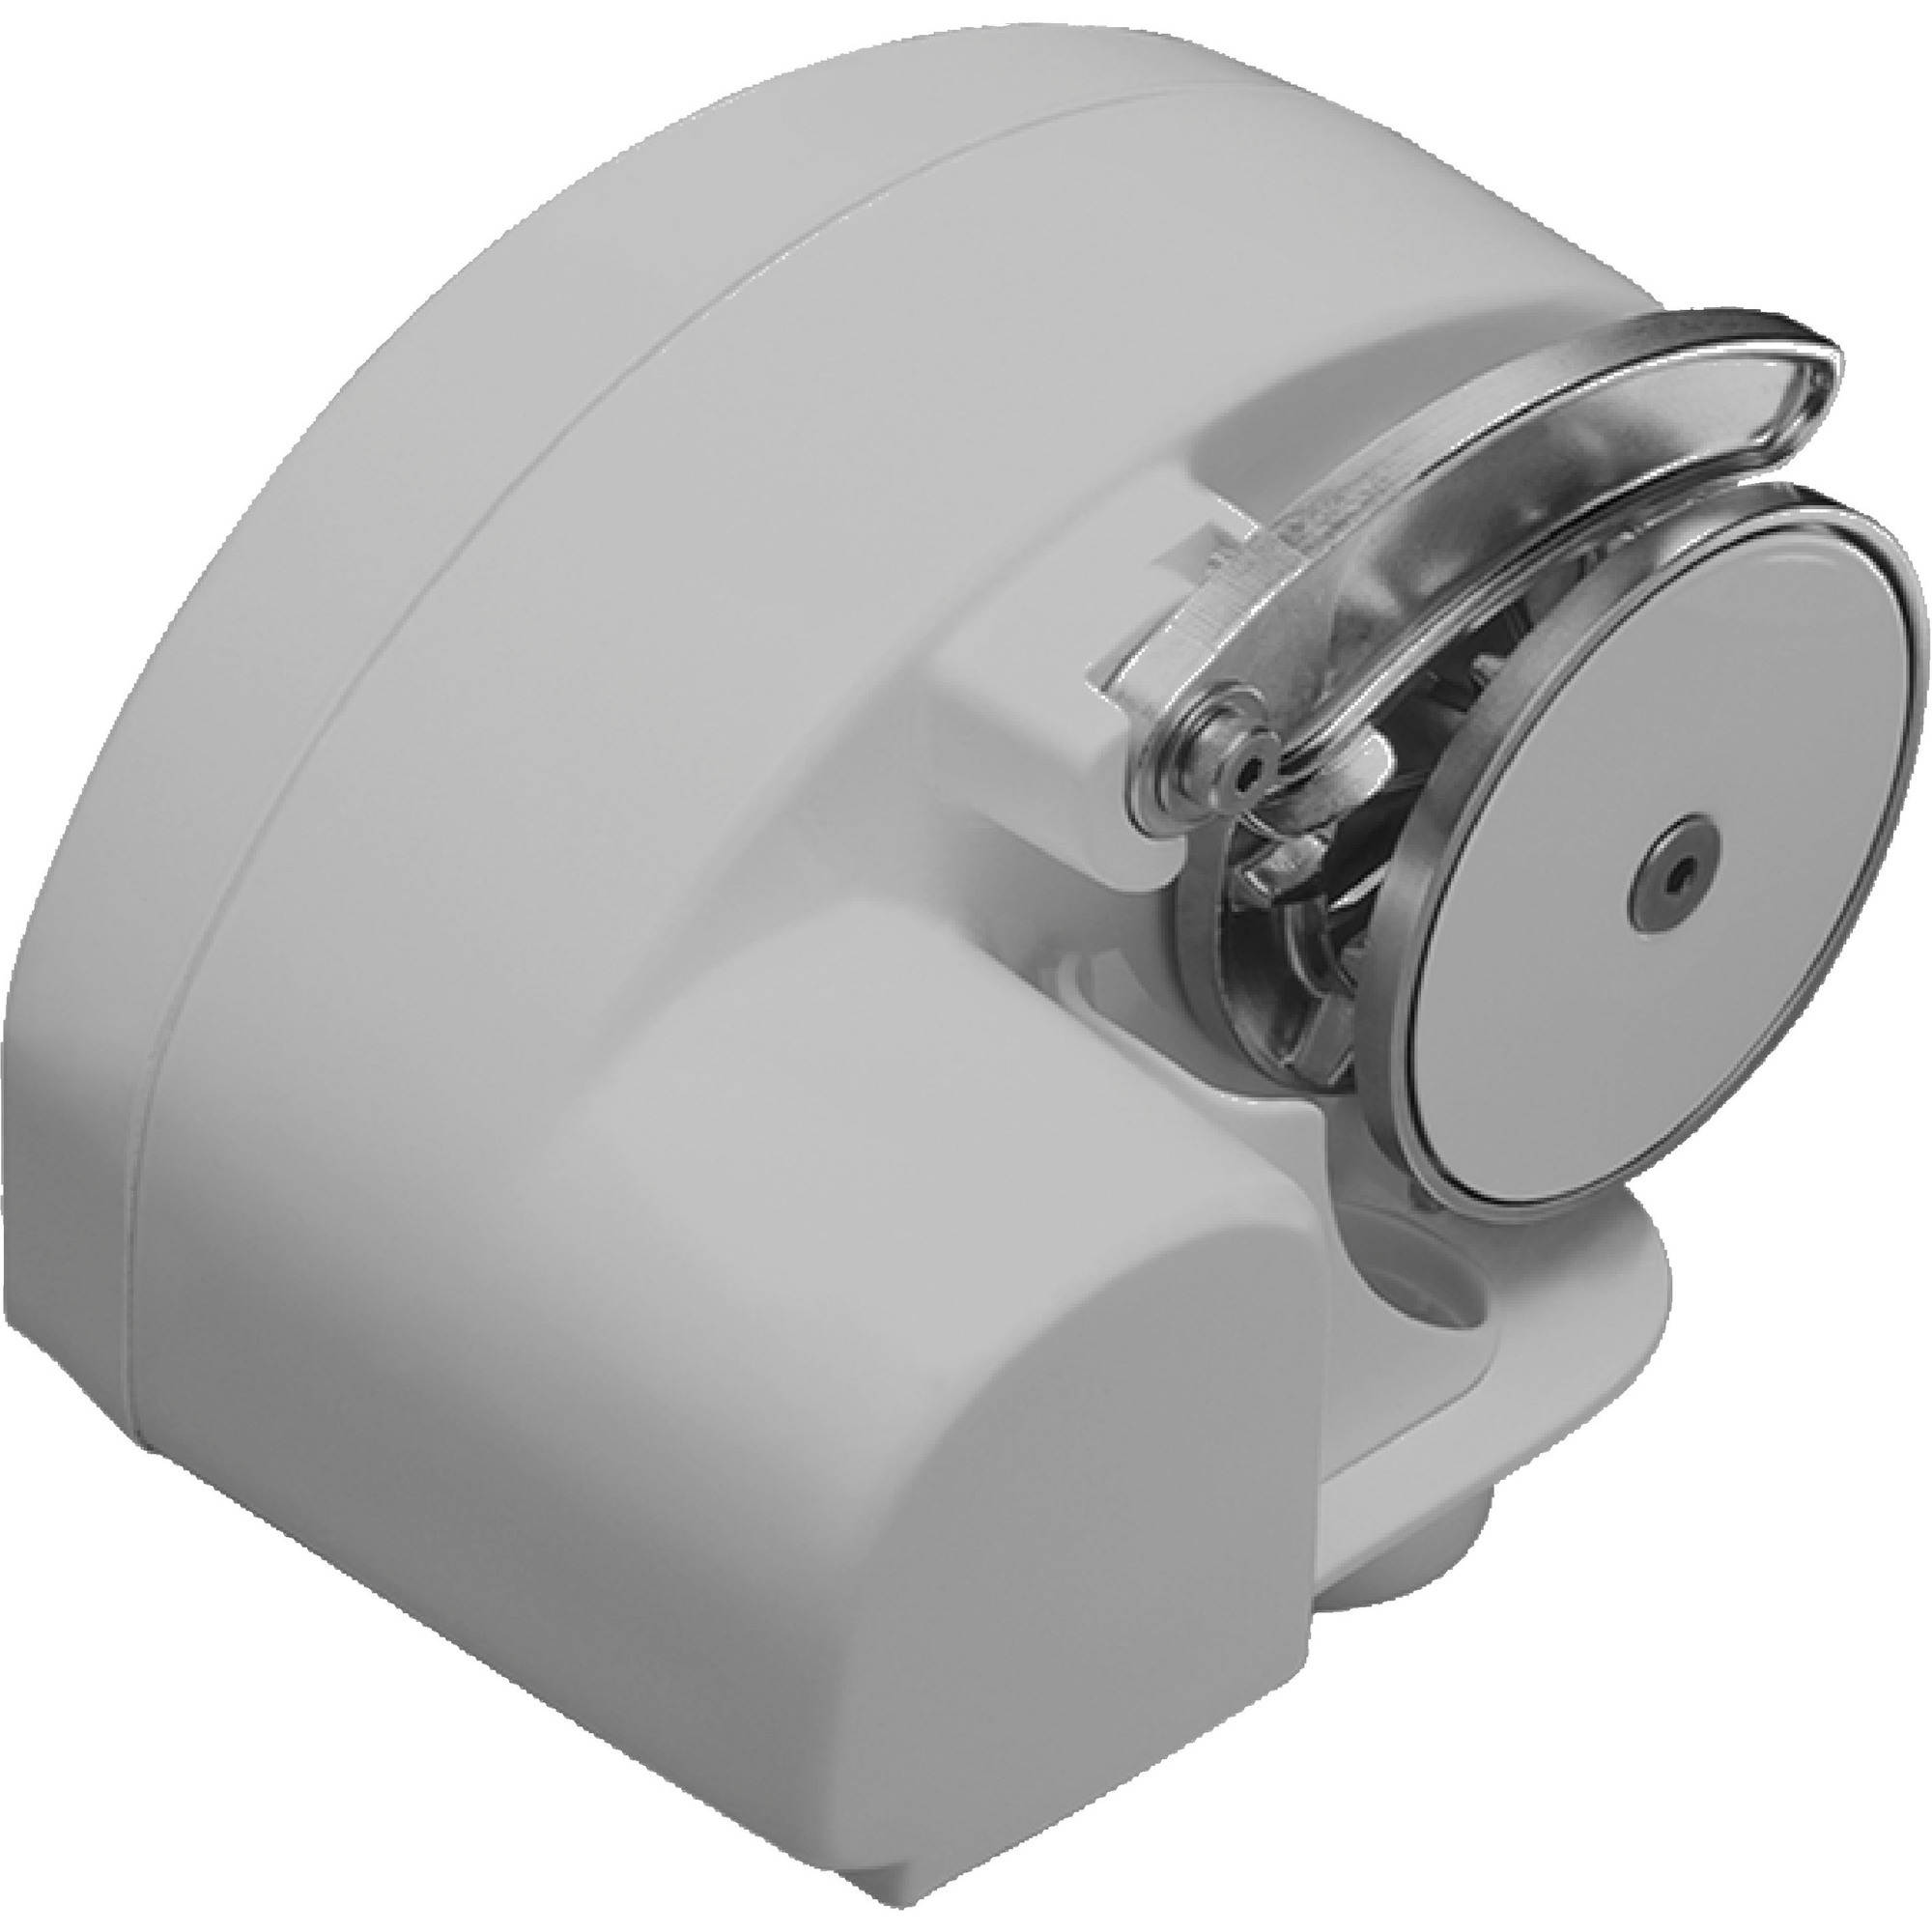 Powerwinch 12V Class 36 Automatic Helm Operated Free-Fall Windlass, 750 lb Pull by Carefree of Colorado